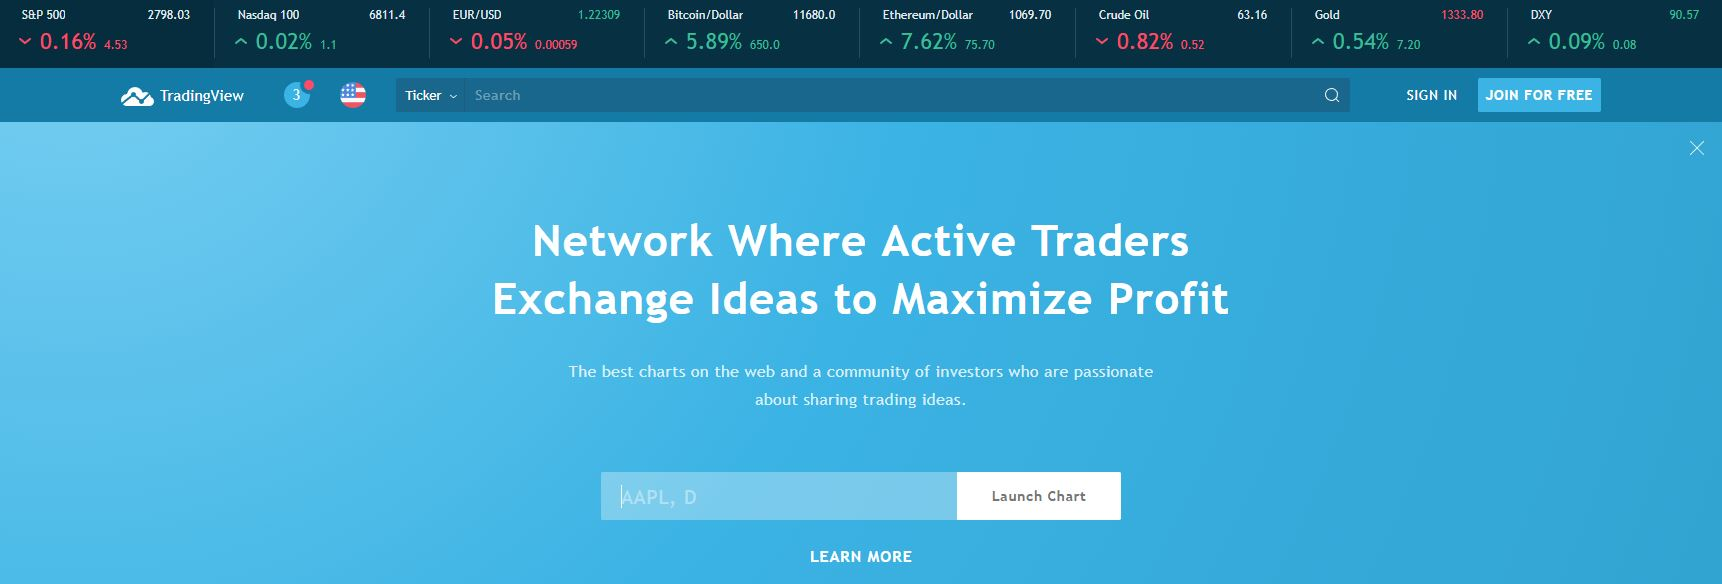 TradingView Review 2019 - Warrior Trading